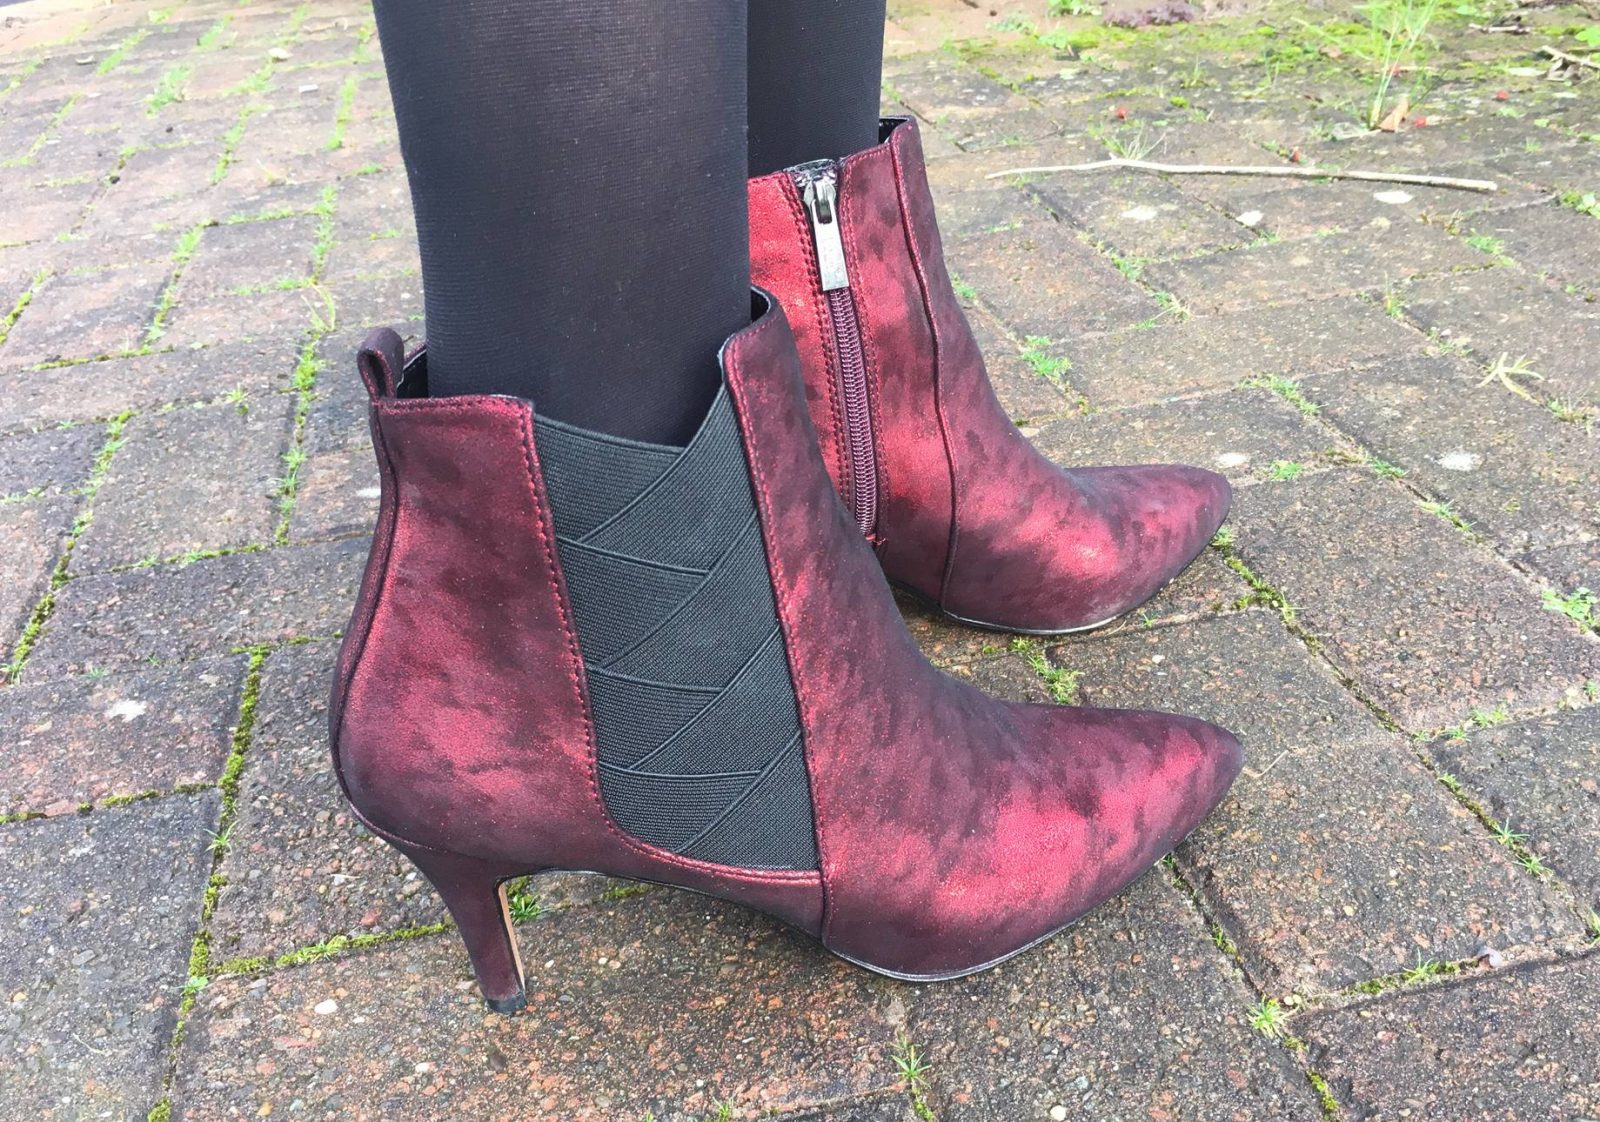 Lotus Booney redankle boots